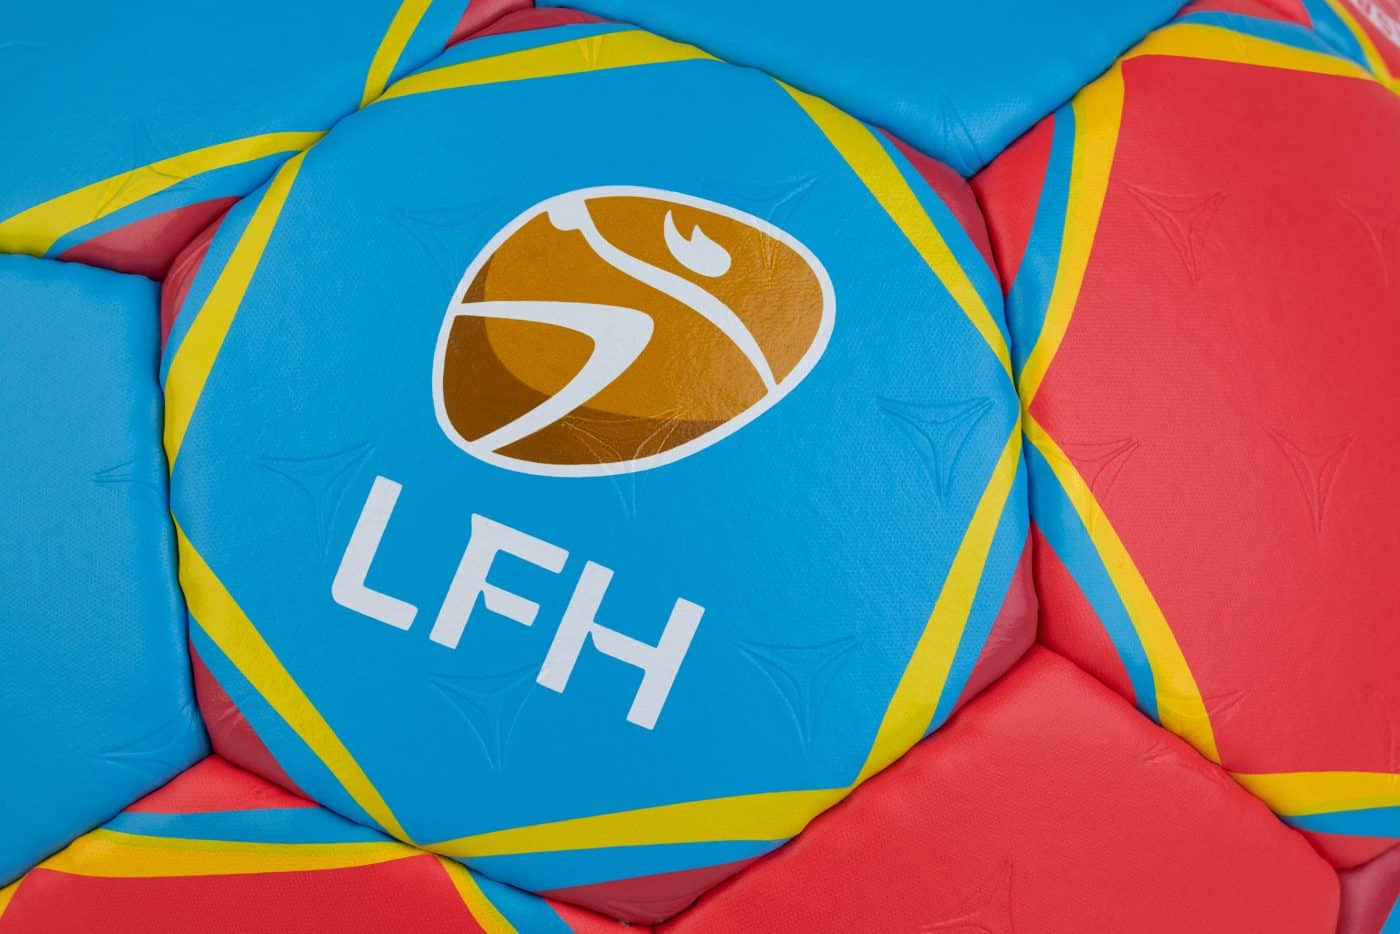 ballon-select-lfh-ligue-feminine-handball-2020-2021-2